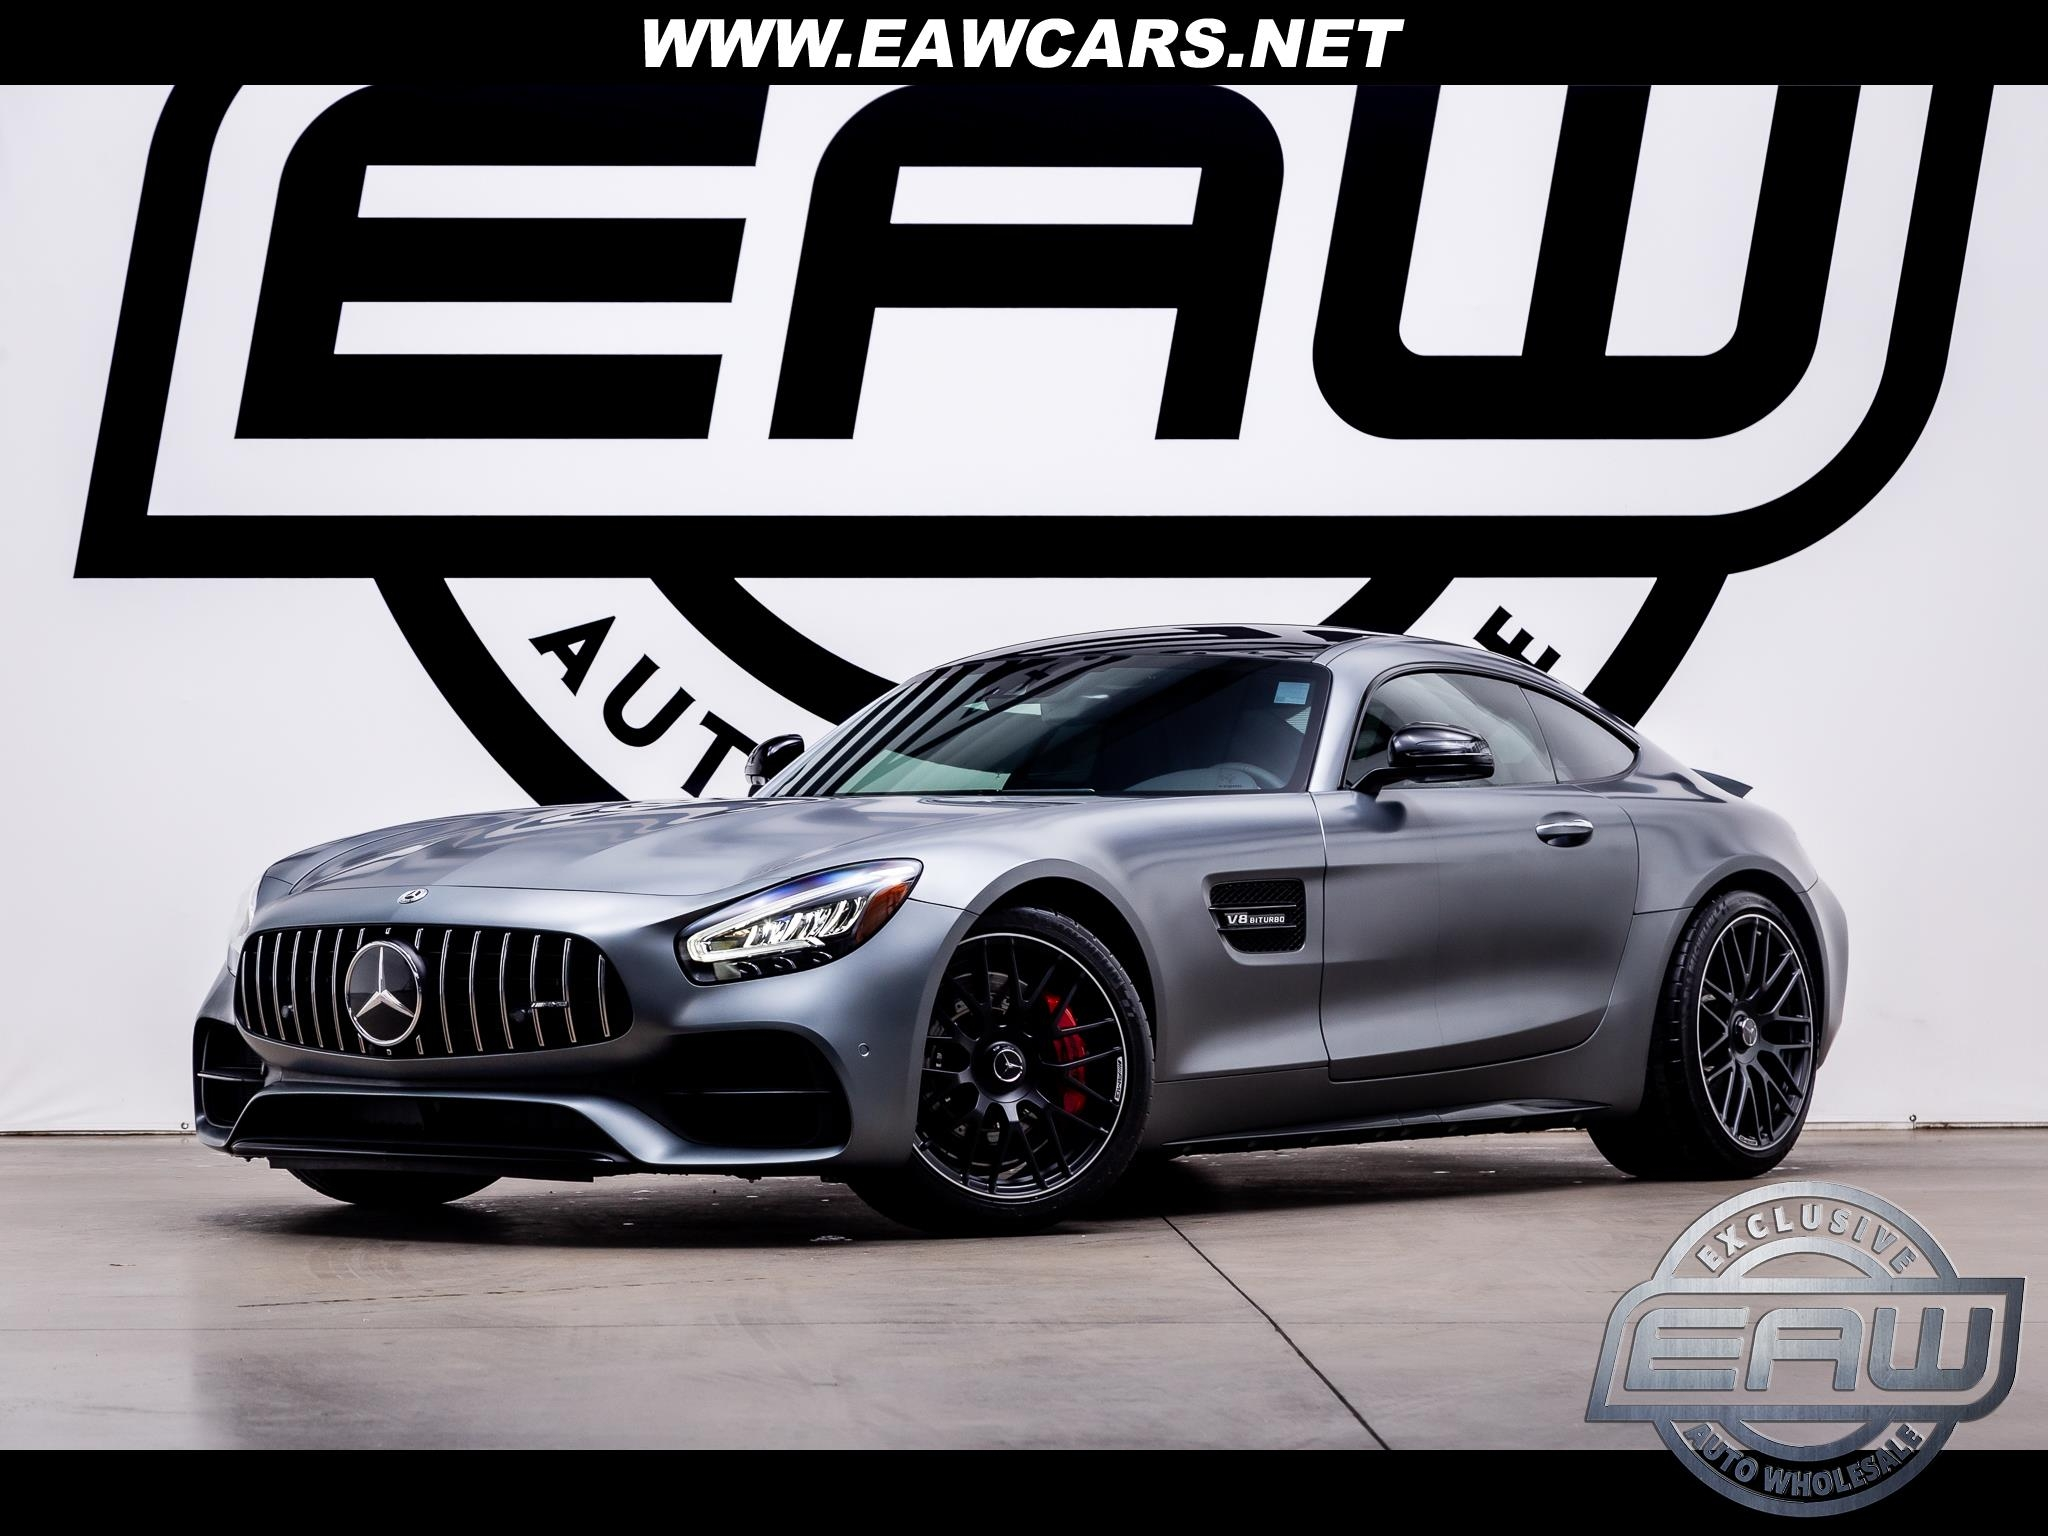 Mercedes-Benz AMG GT AMG GT C Coupe 2020